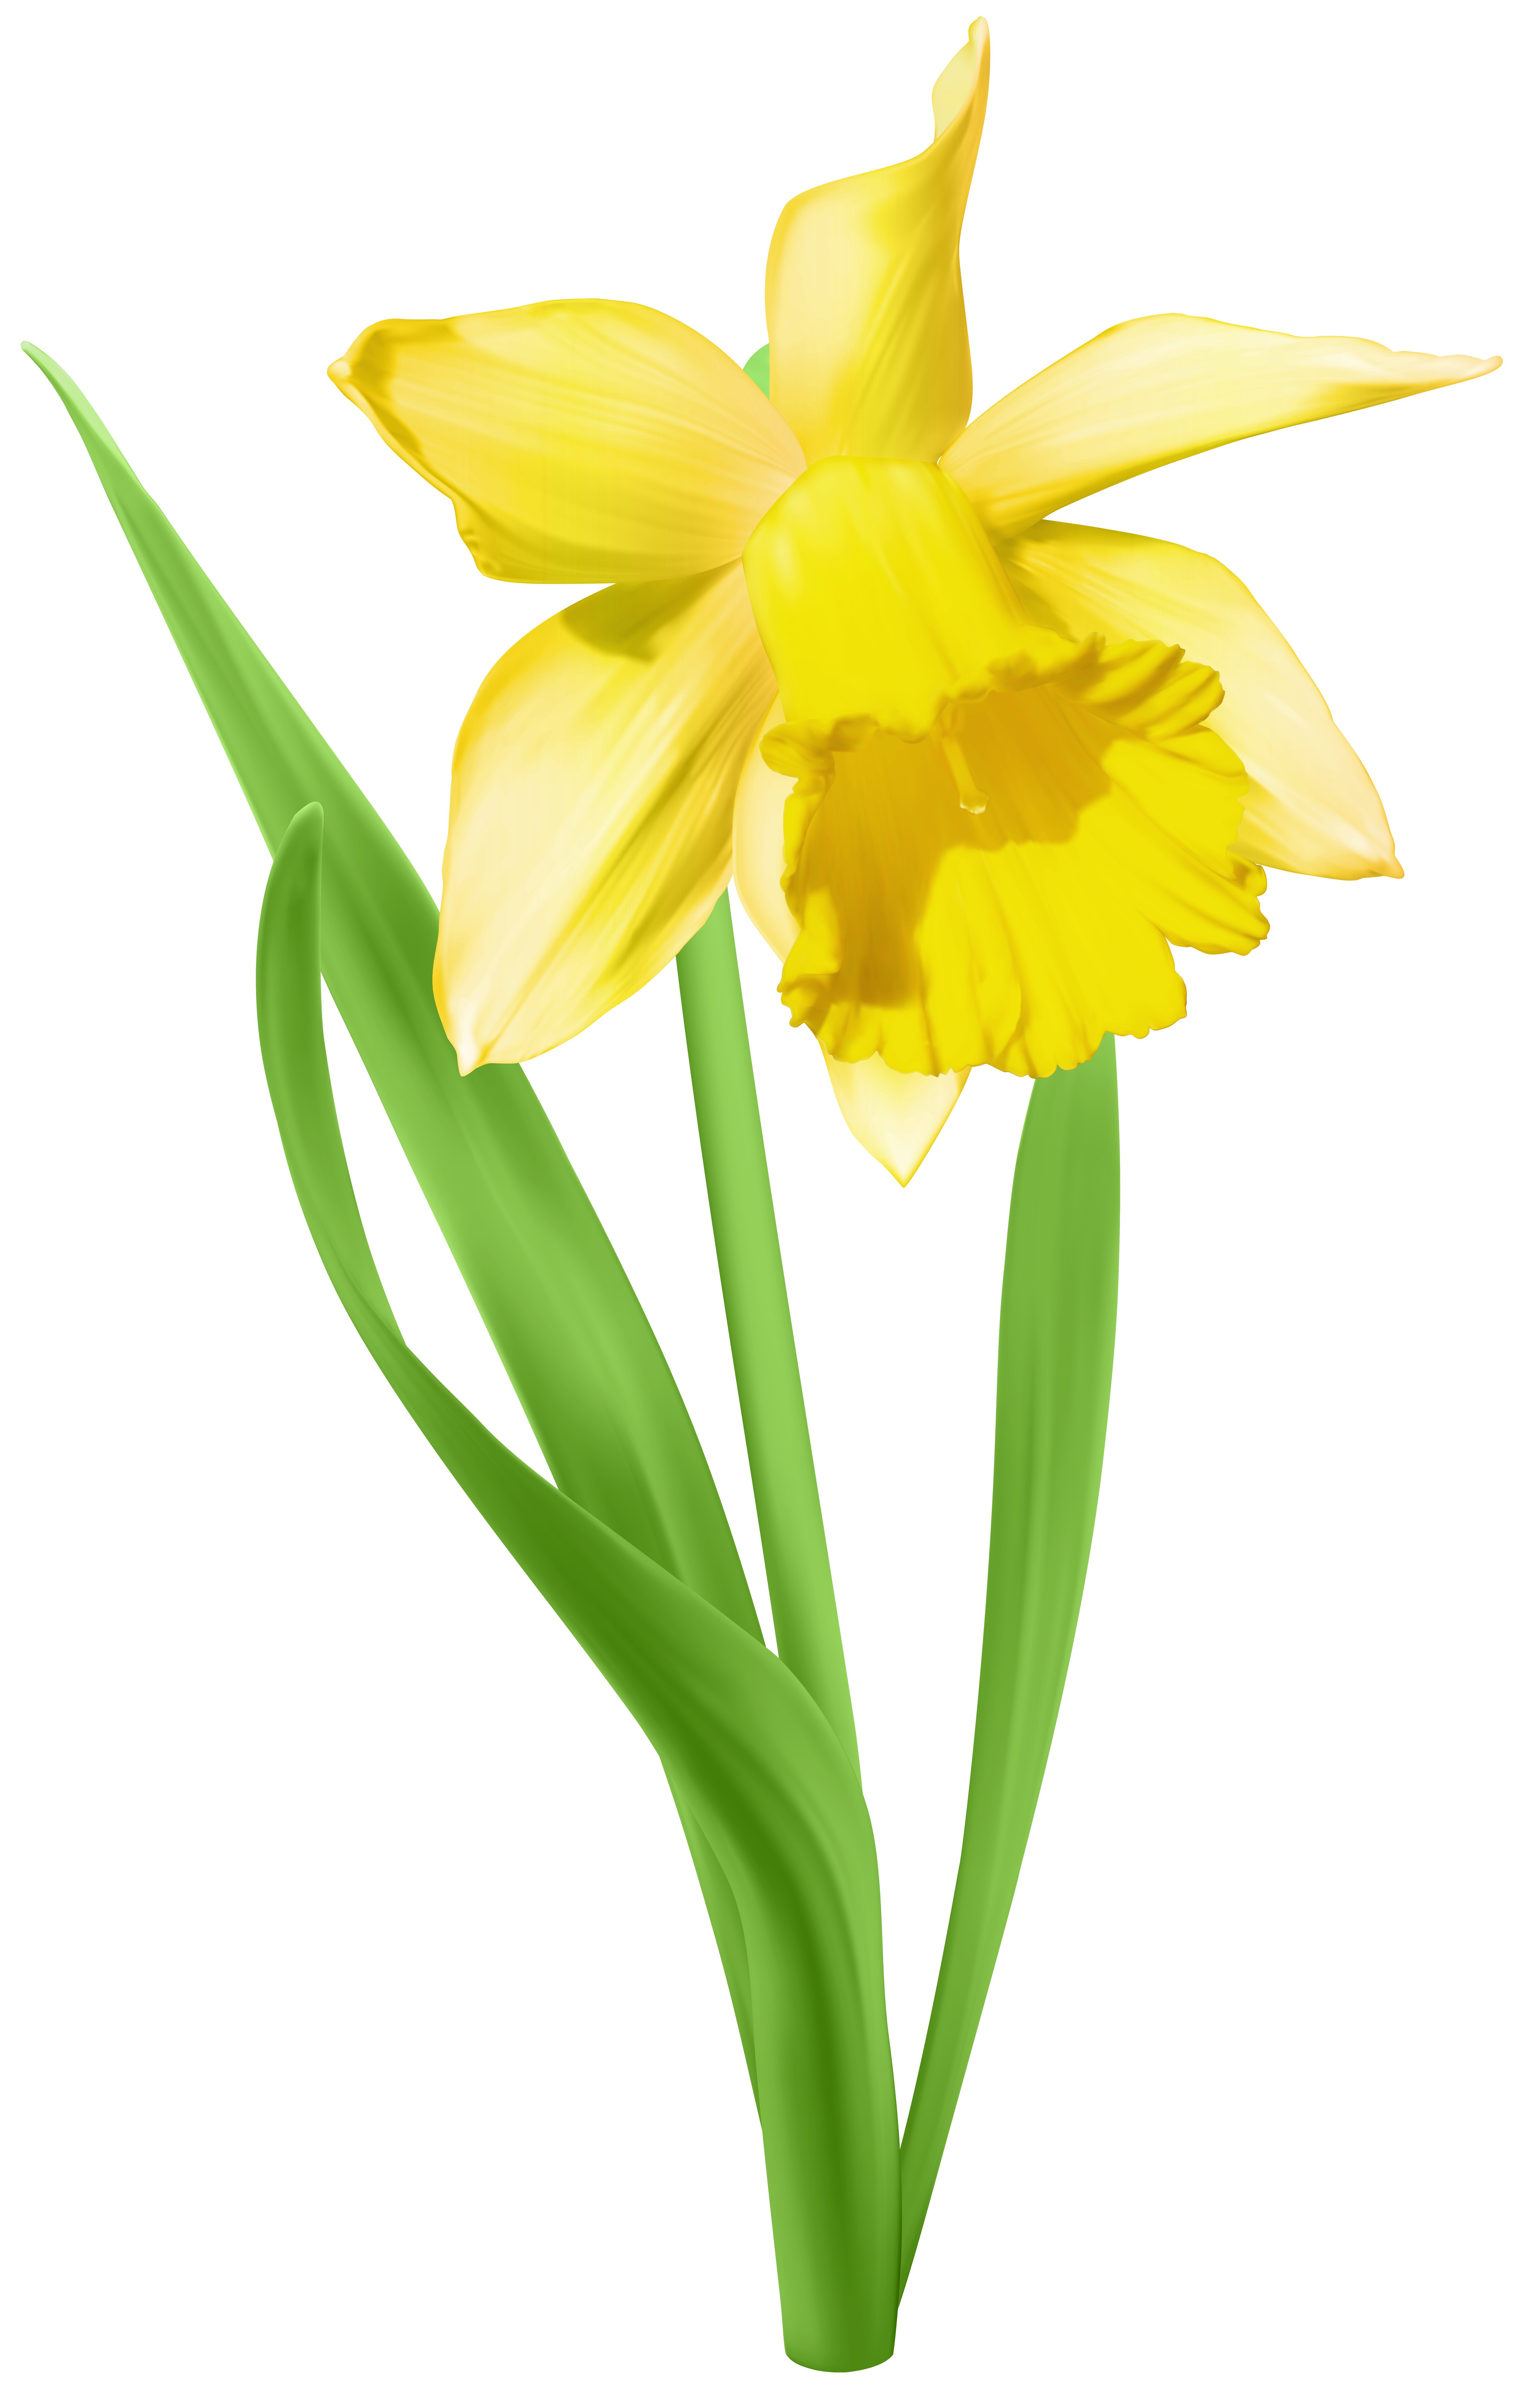 Daffodil clipart #2, Download drawings